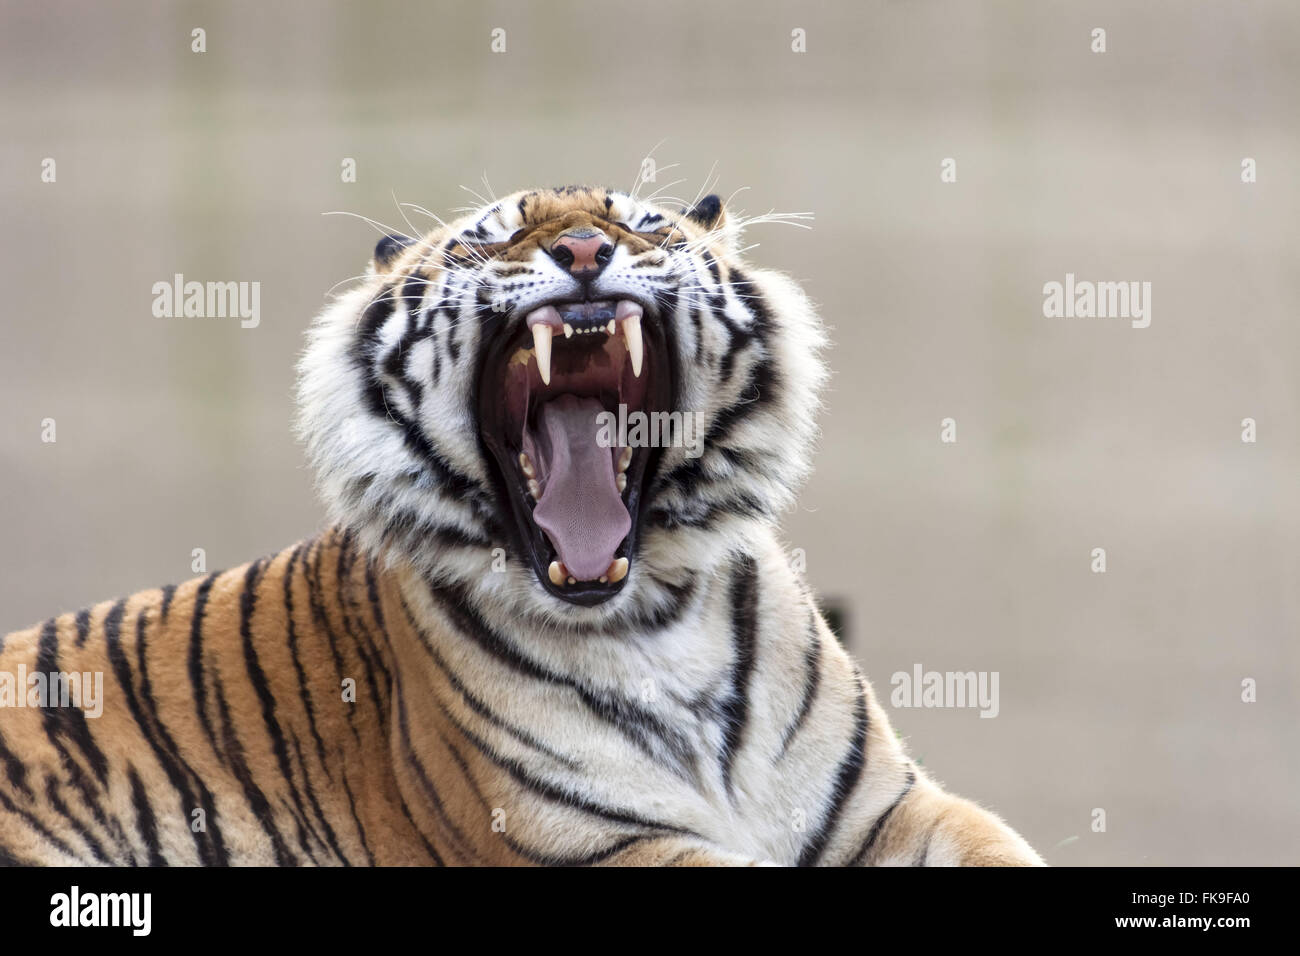 Roaring tiger - the city zoo founded in 1932 - maintained by Hermann Foundation Weege Stock Photo